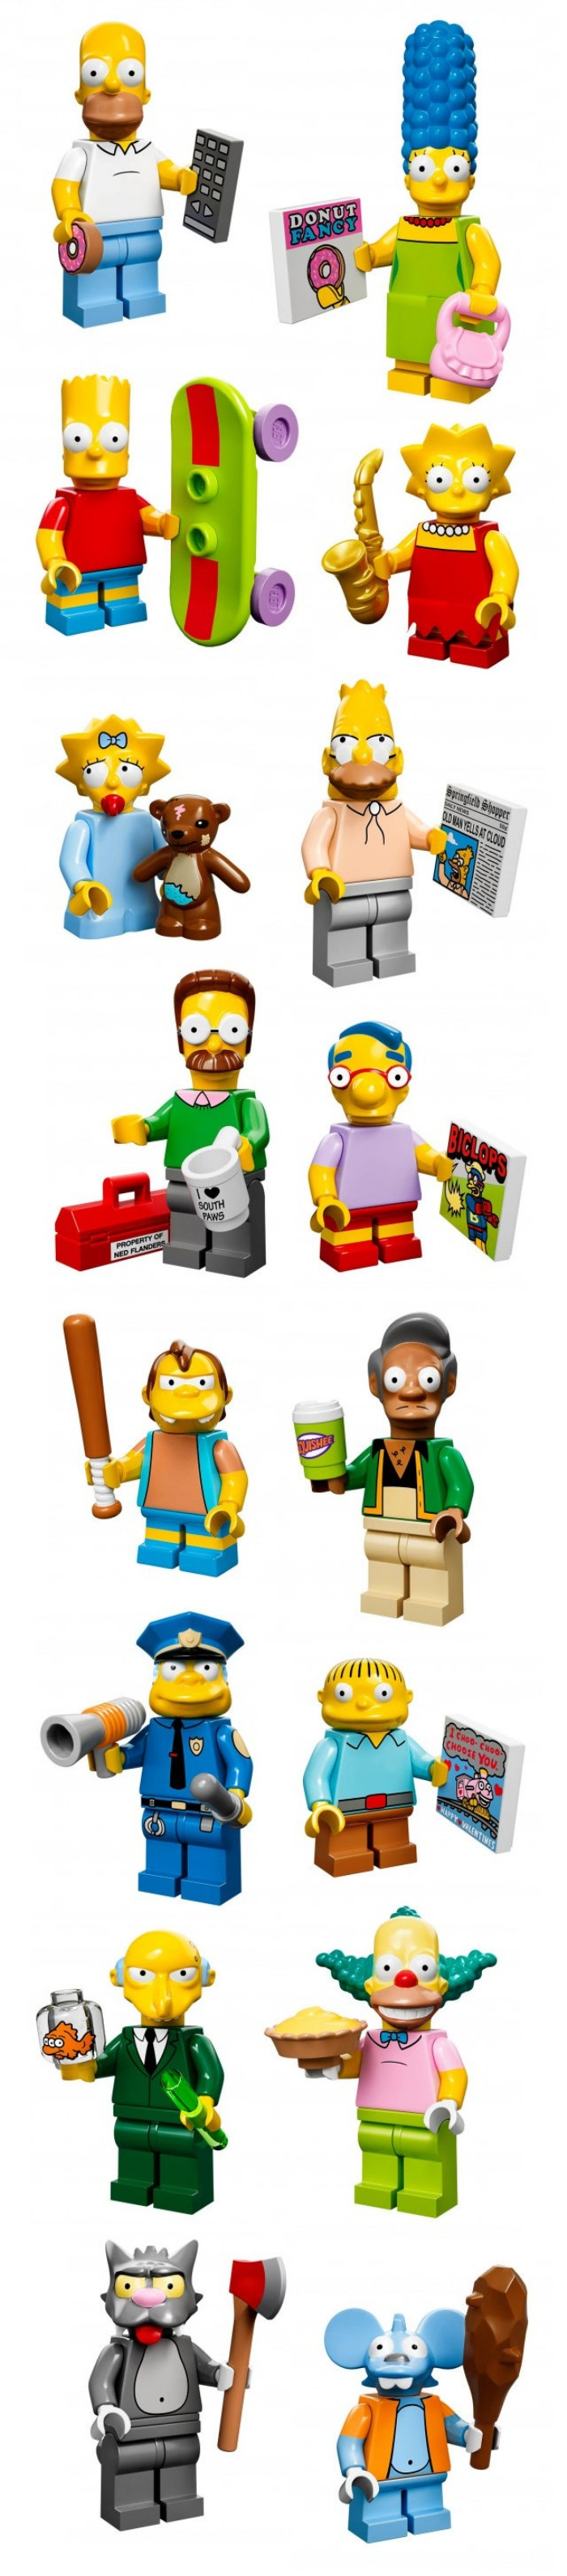 LEGO Simpsons Minifigs1